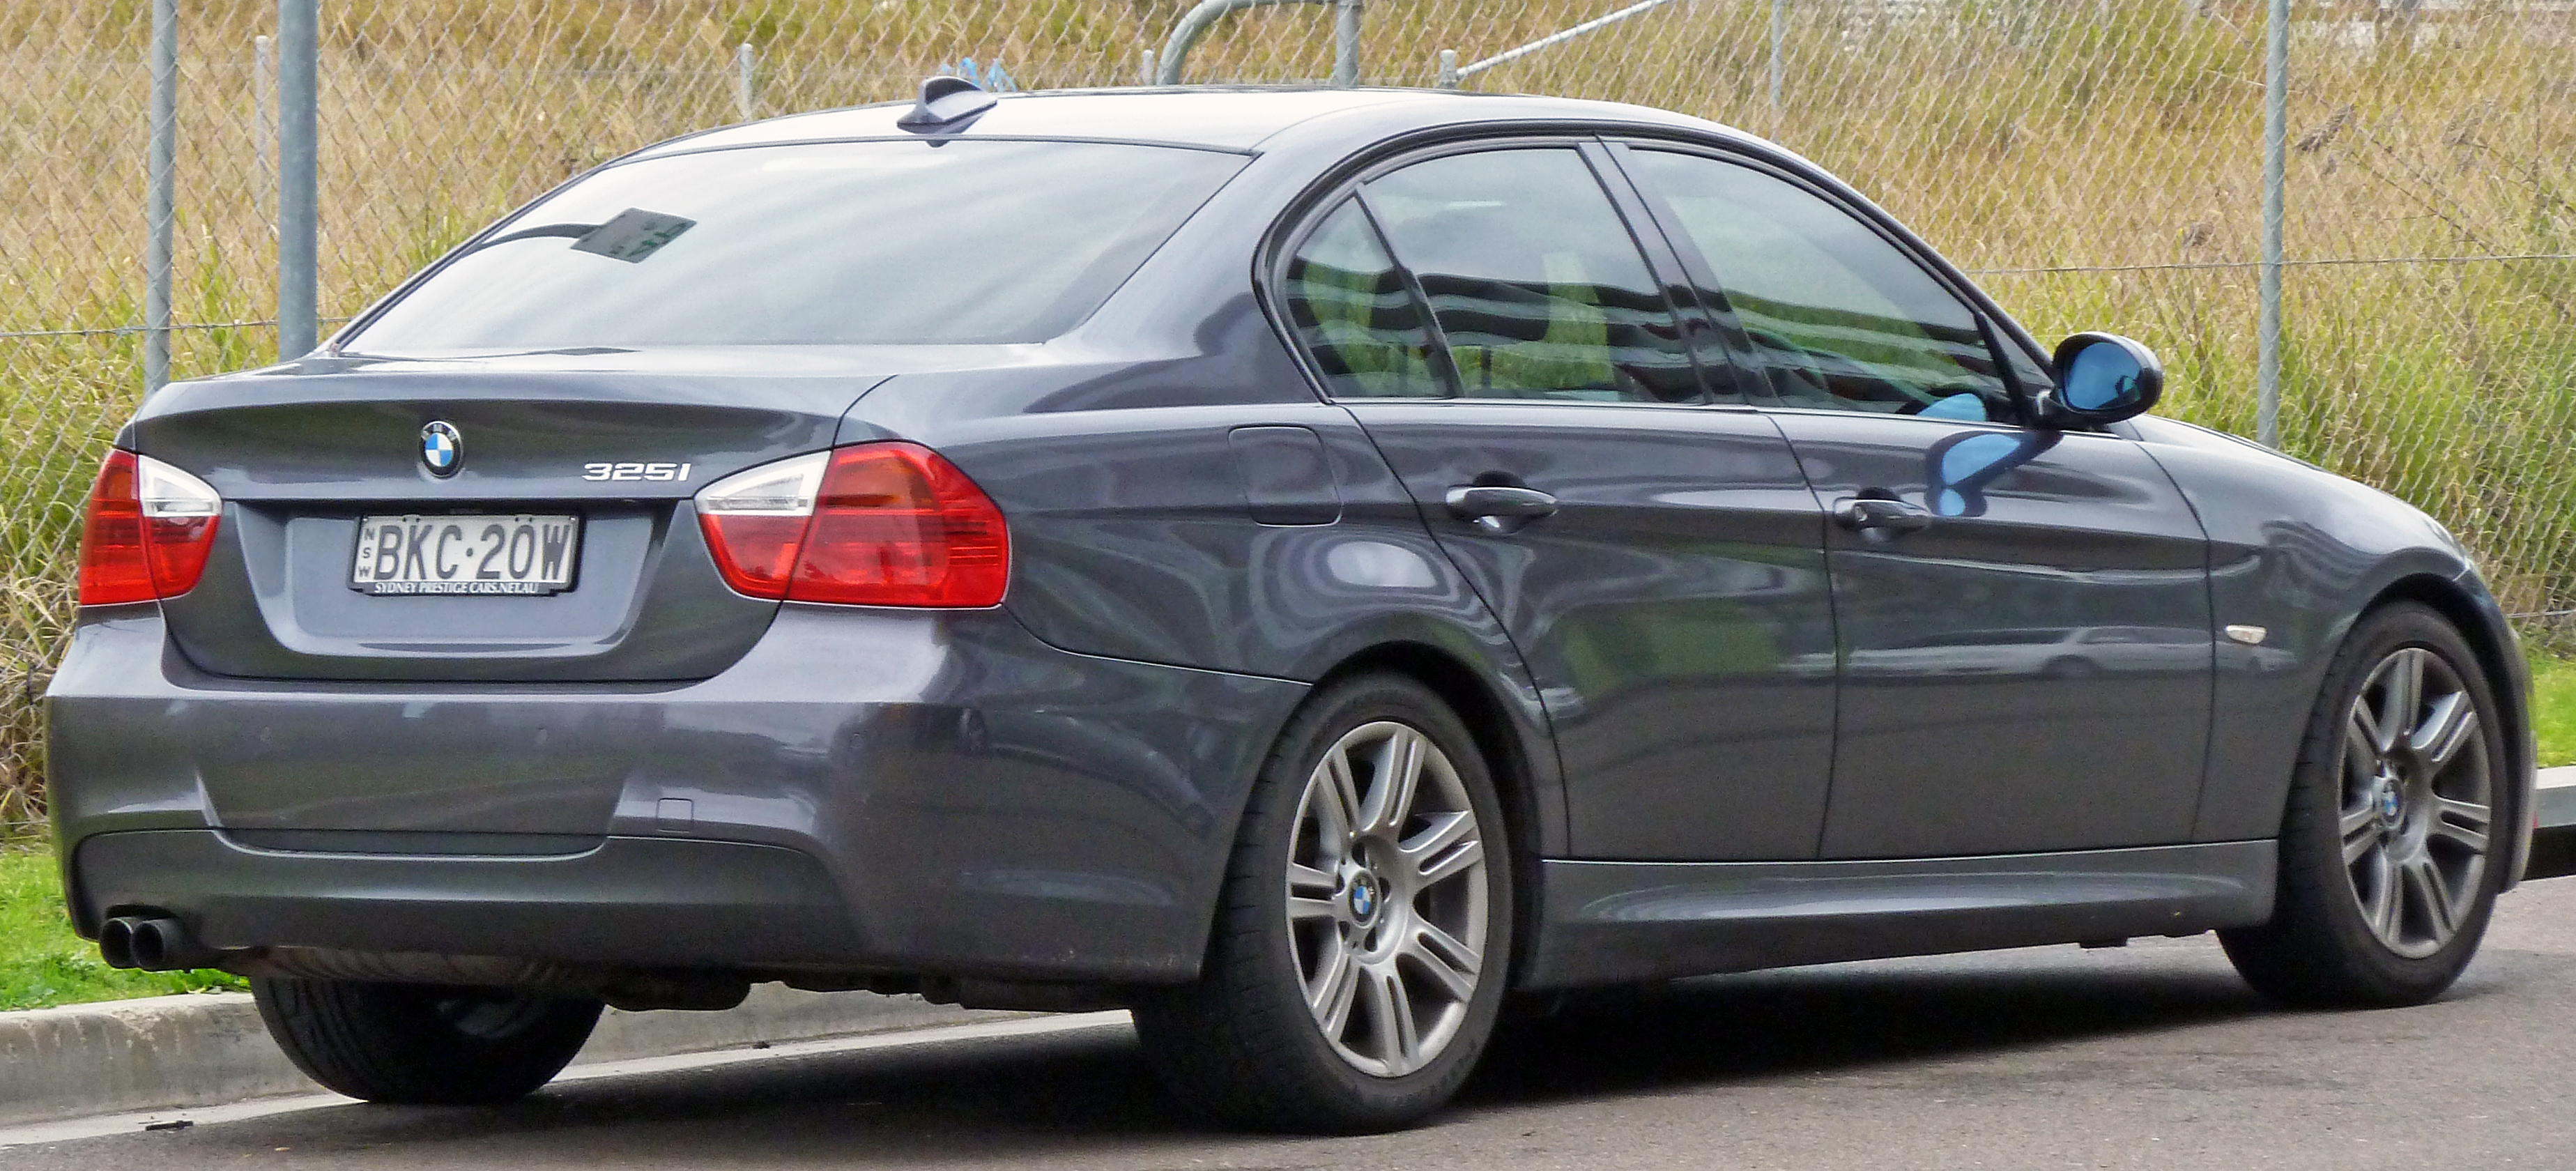 BMW 3 Series (E90) - Wikipedia